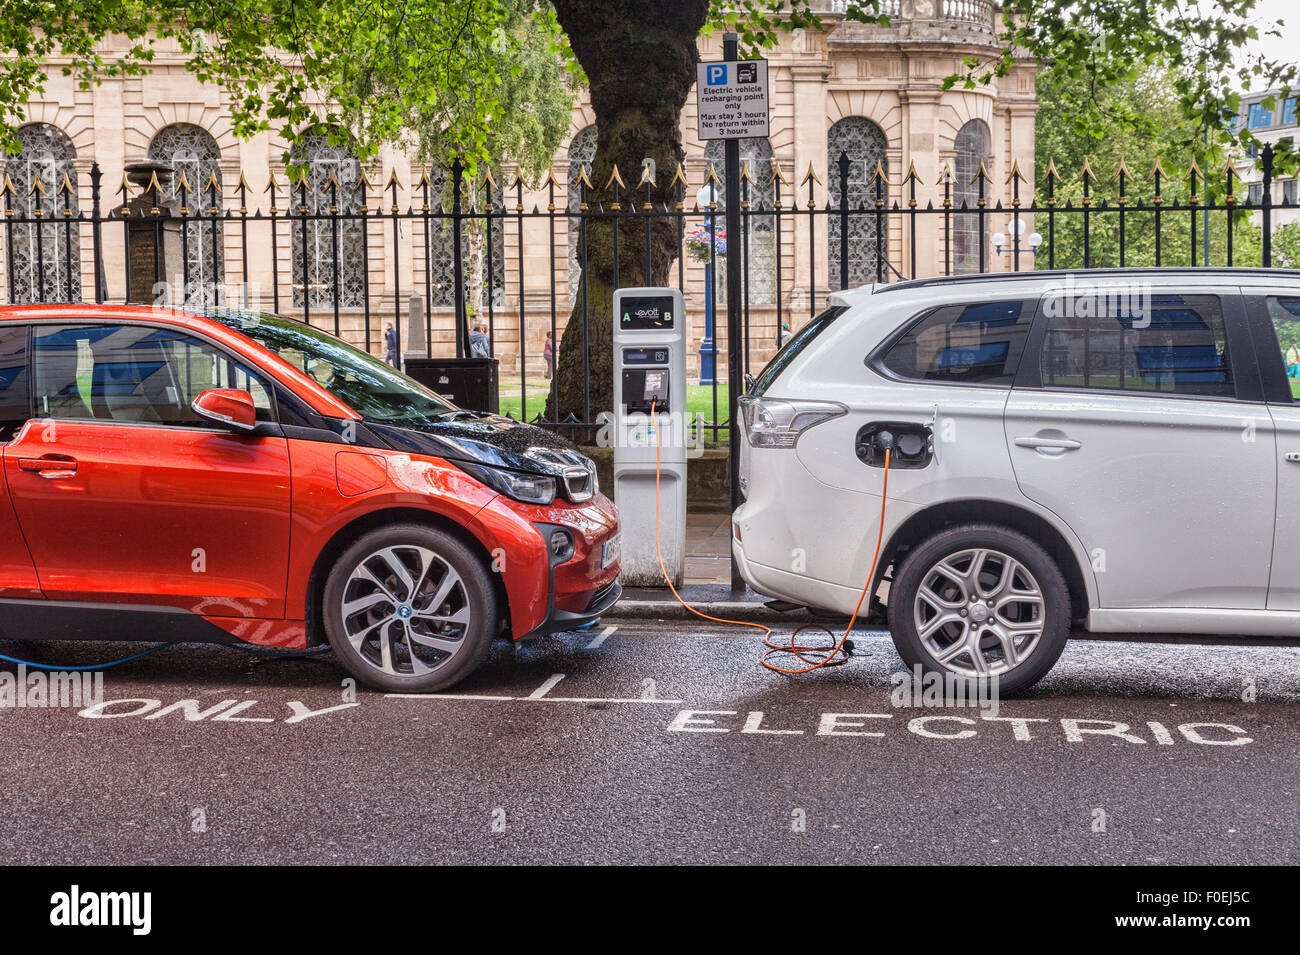 Electric cars being charged in the centre of Birmingham, West Midlands, England - Stock Image